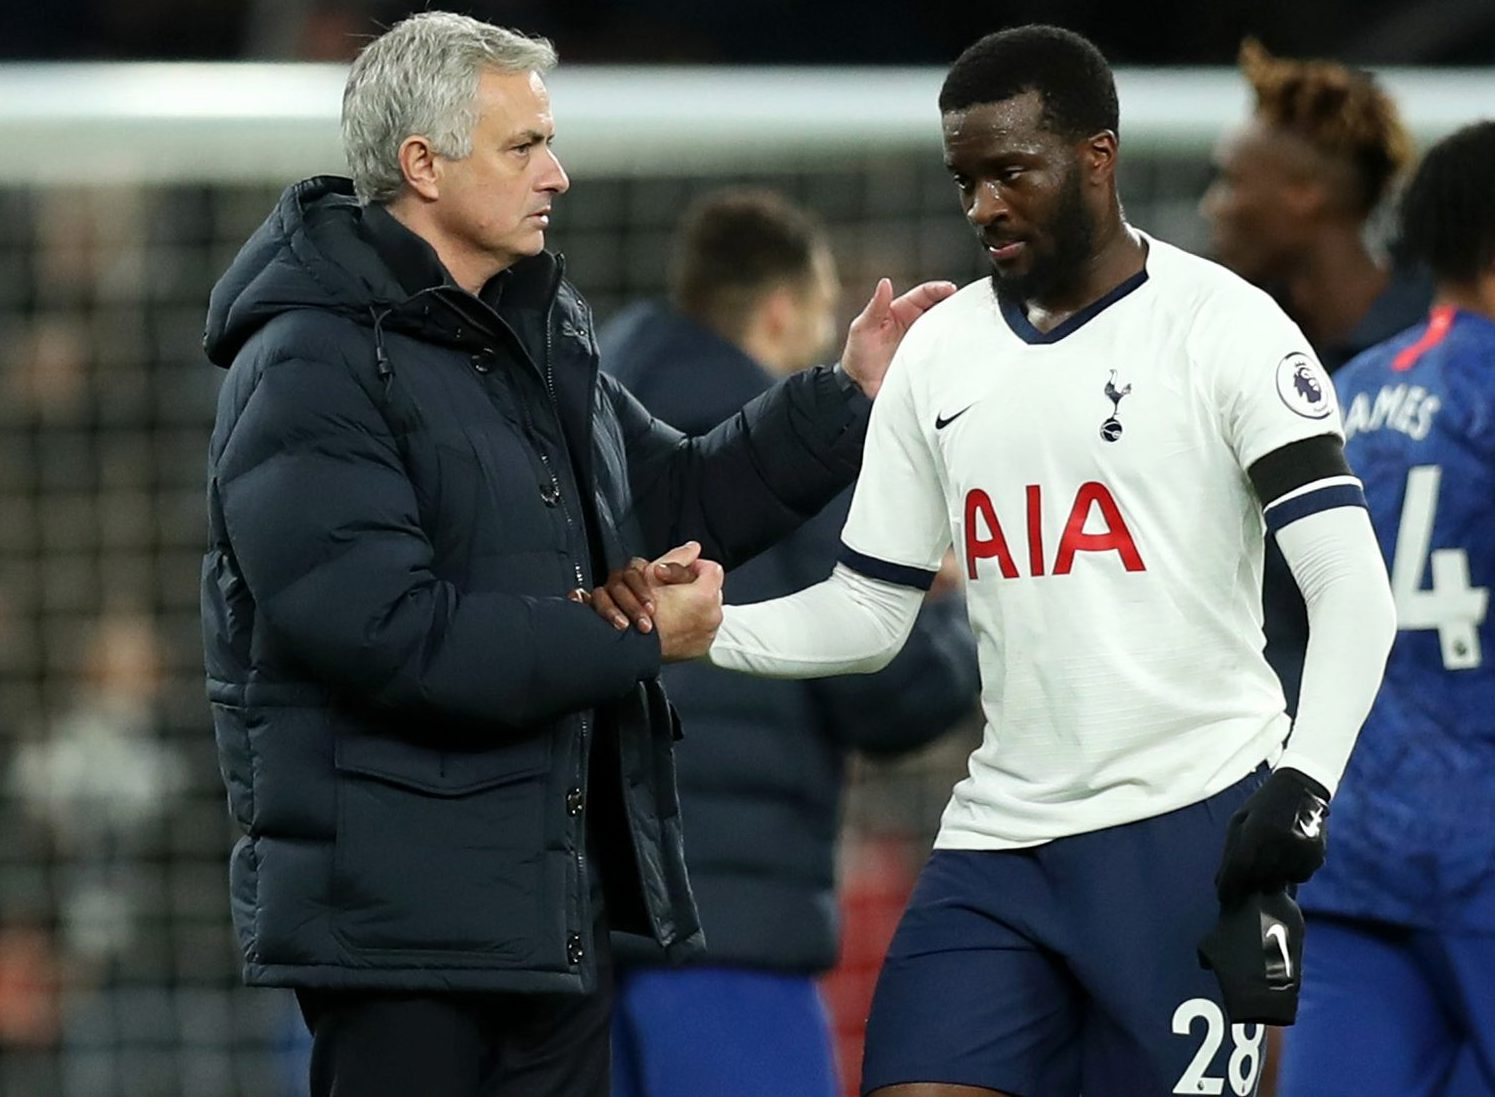 Tanguy Ndombele 'tells Jose Mourinho he will never play for him again at Tottenham after another bust-up' - The Sun